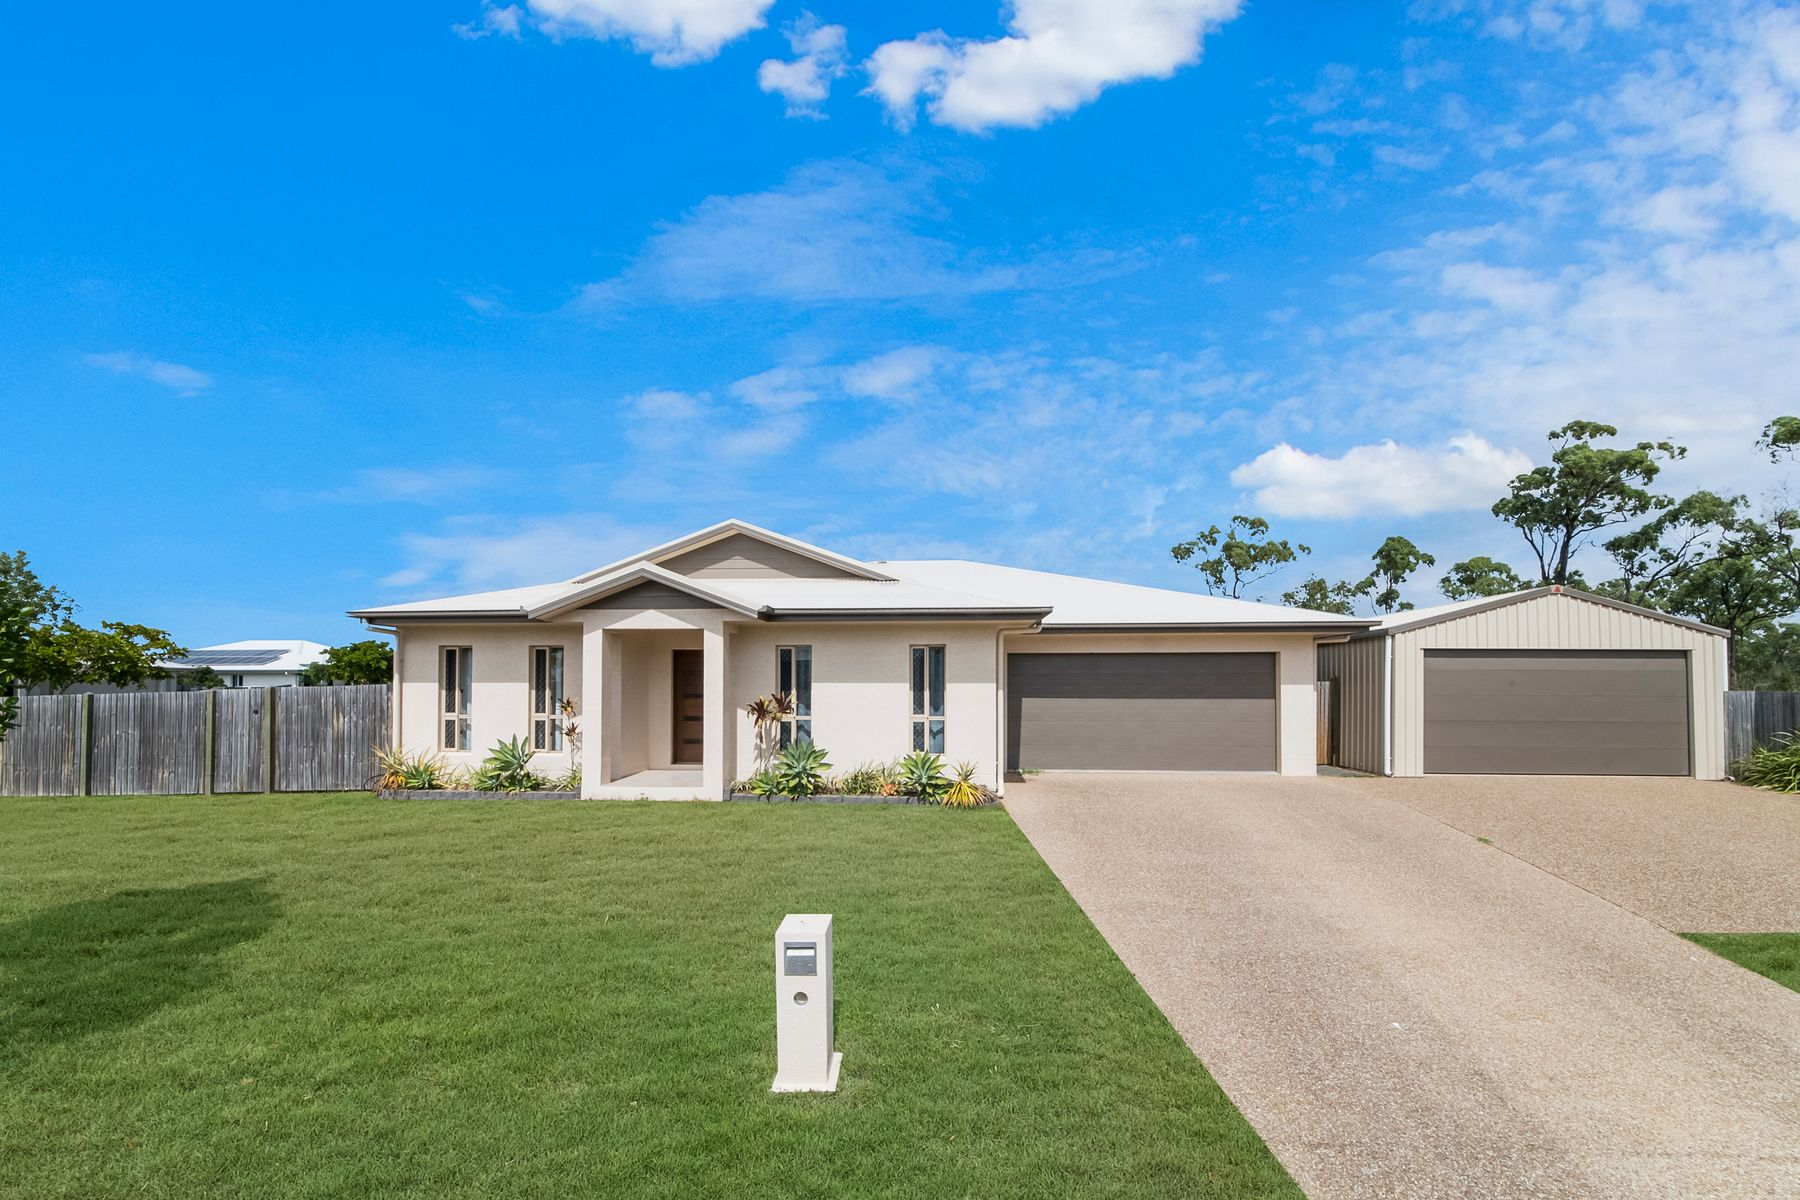 37 Pongamia Parade, Mount Low, QLD 4818